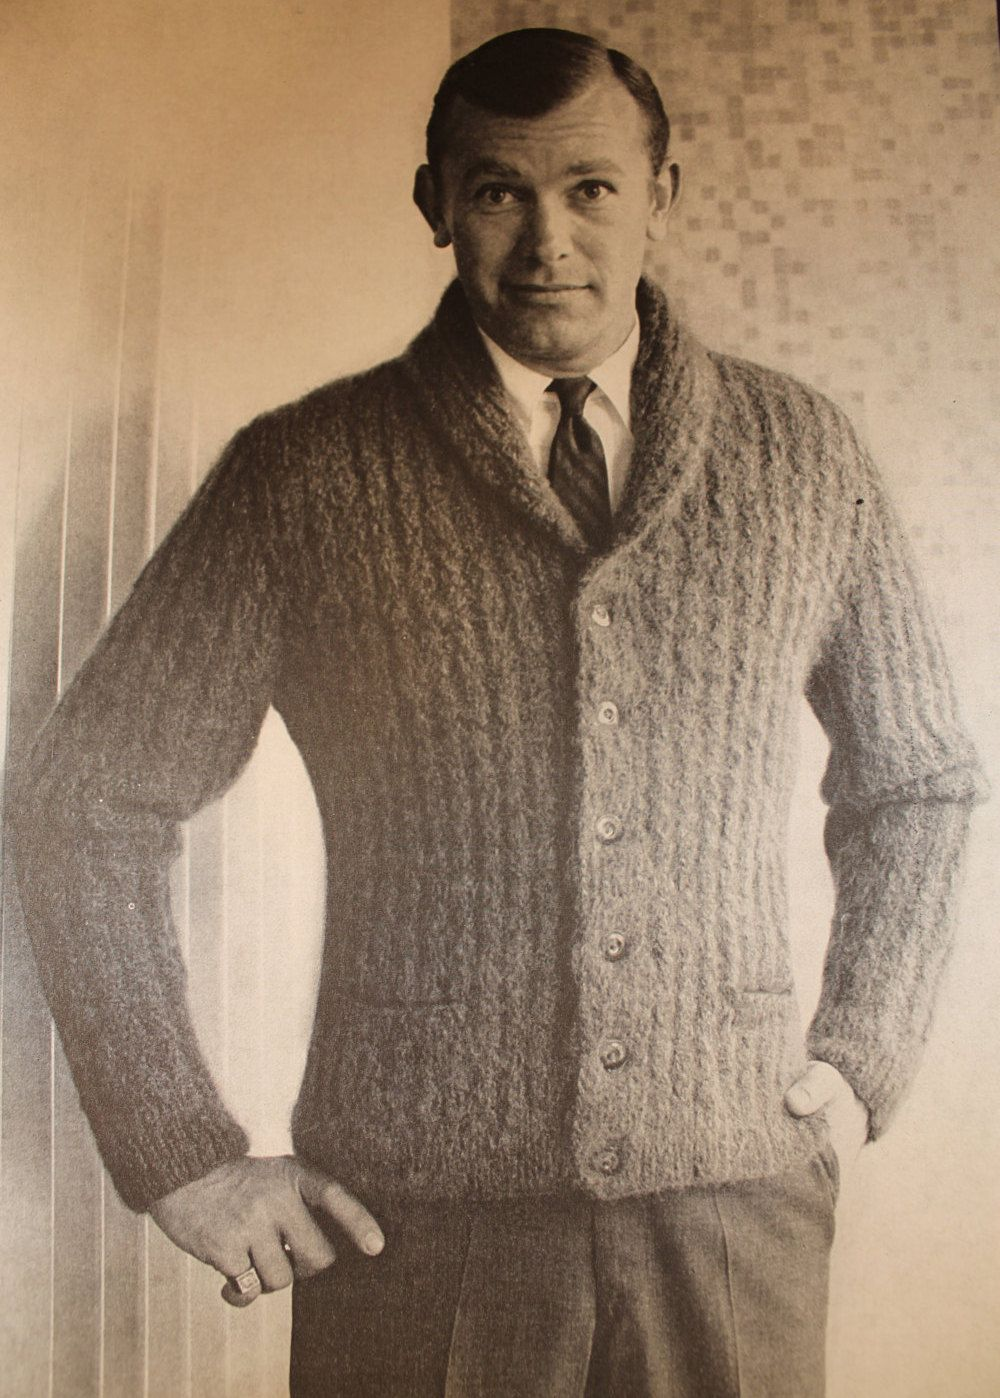 Hipster Vintage Knitting Pattern - Men's Mohair Cardigan - 1960's Mad Men style (62A16) by WoolfsClothing on Etsy